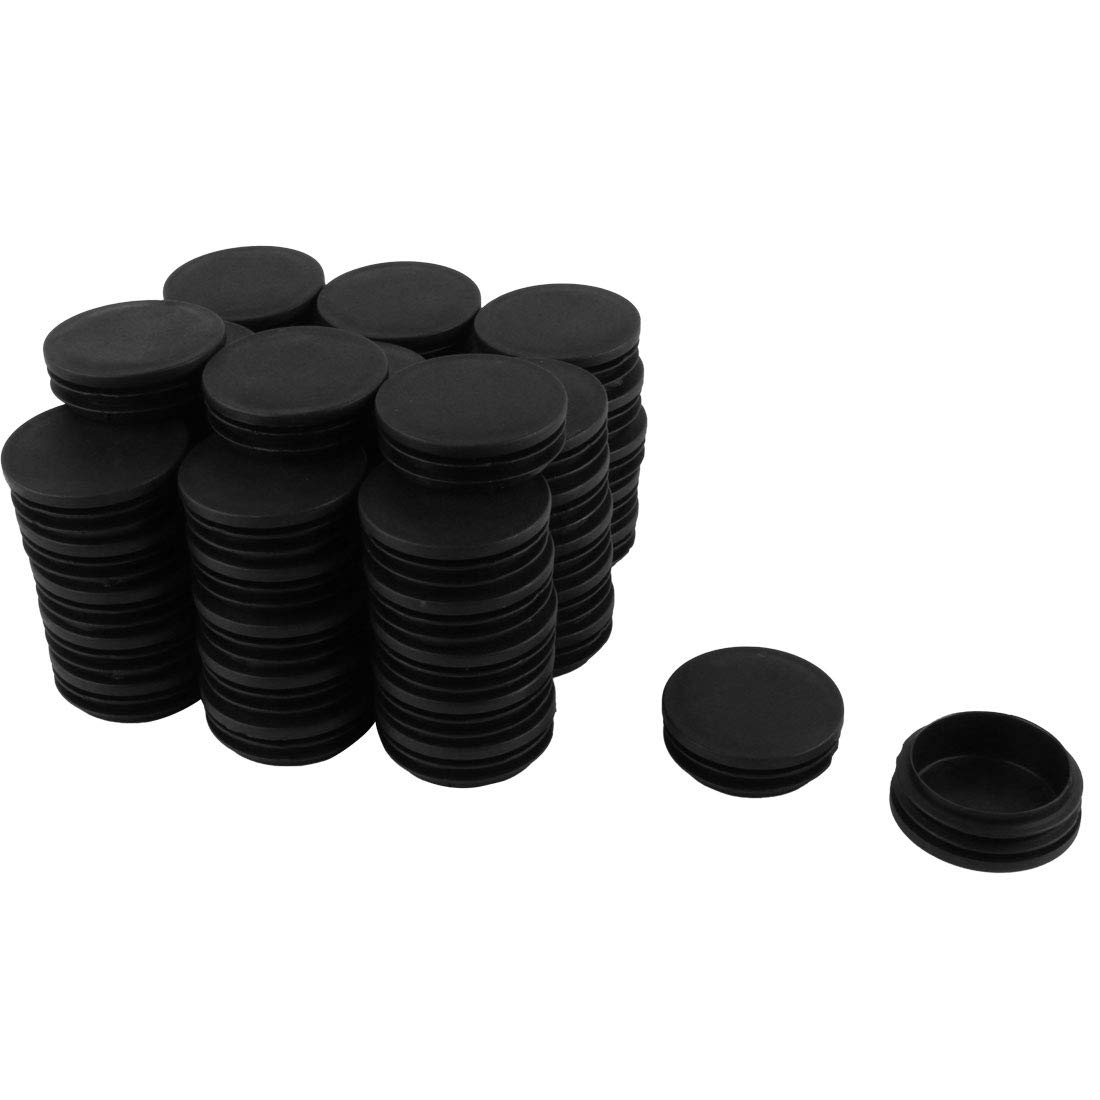 uxcell 50mm Diameter Plastic Cap Chair Table Legs Round Tube Insert 50 Pcs by uxcell (Image #1)